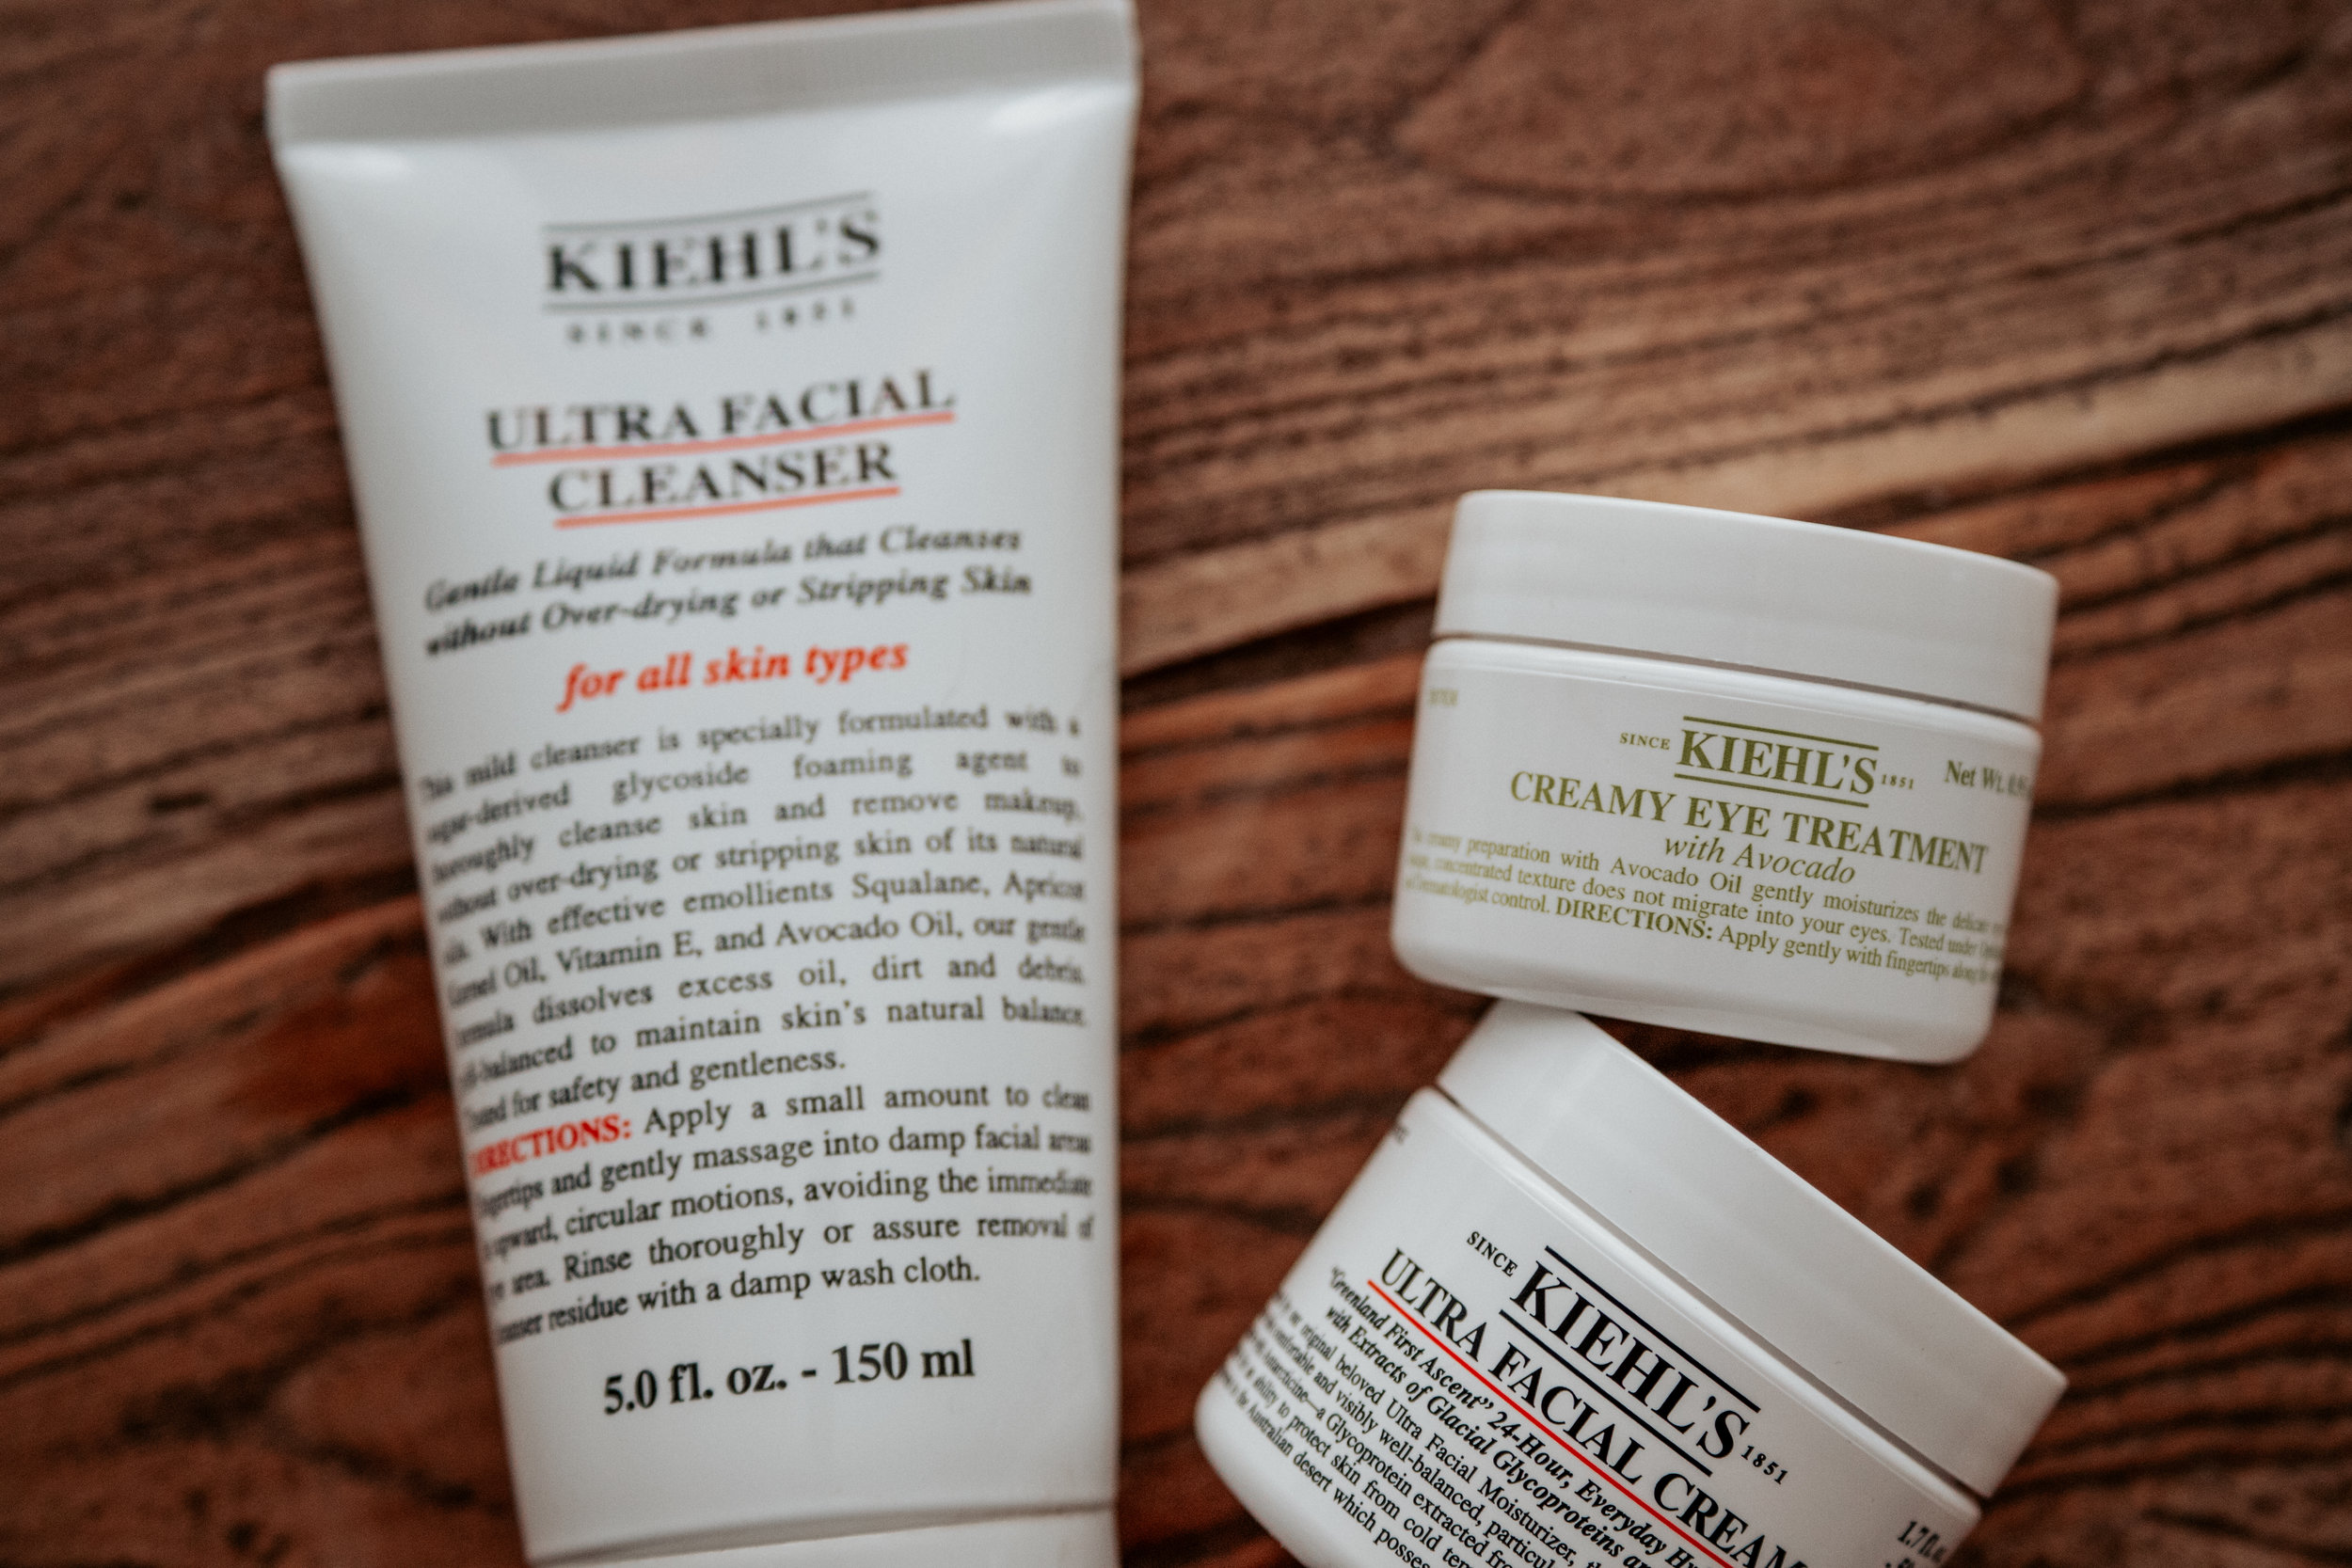 Kiehl's-cleansers-creams-ashlee-rose-photography-tiny-ashe